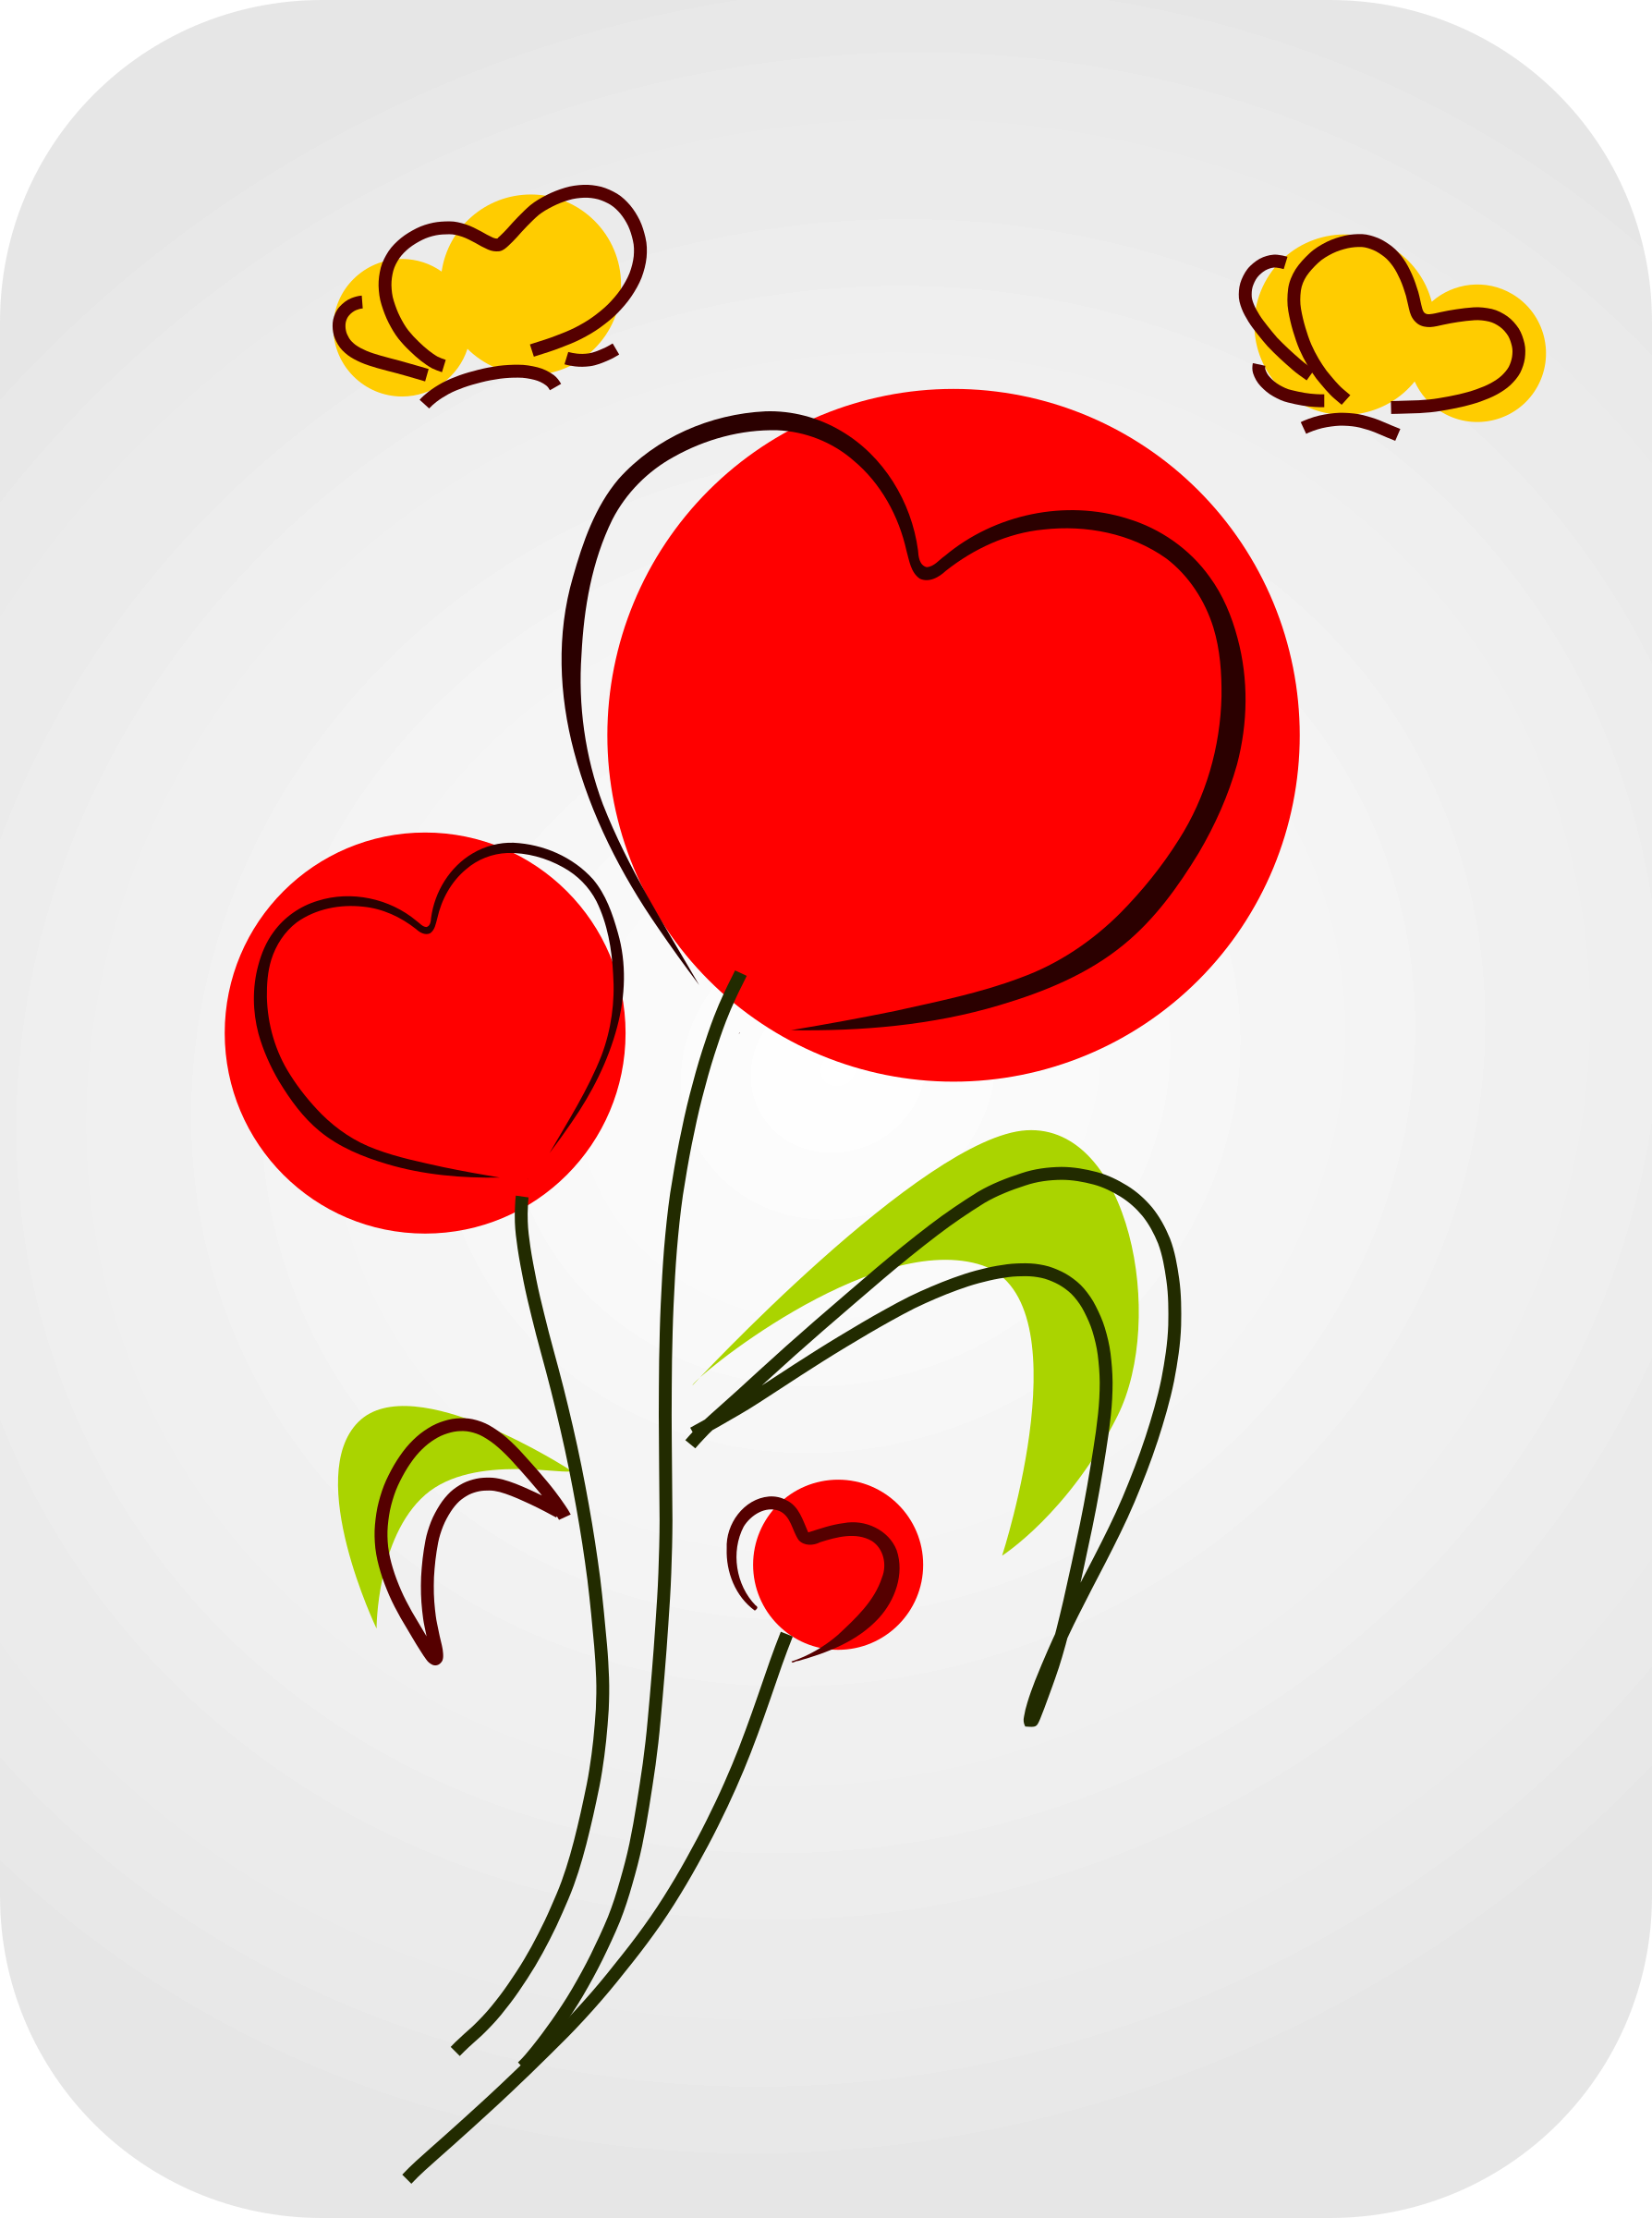 Clipart hearts and flowers image